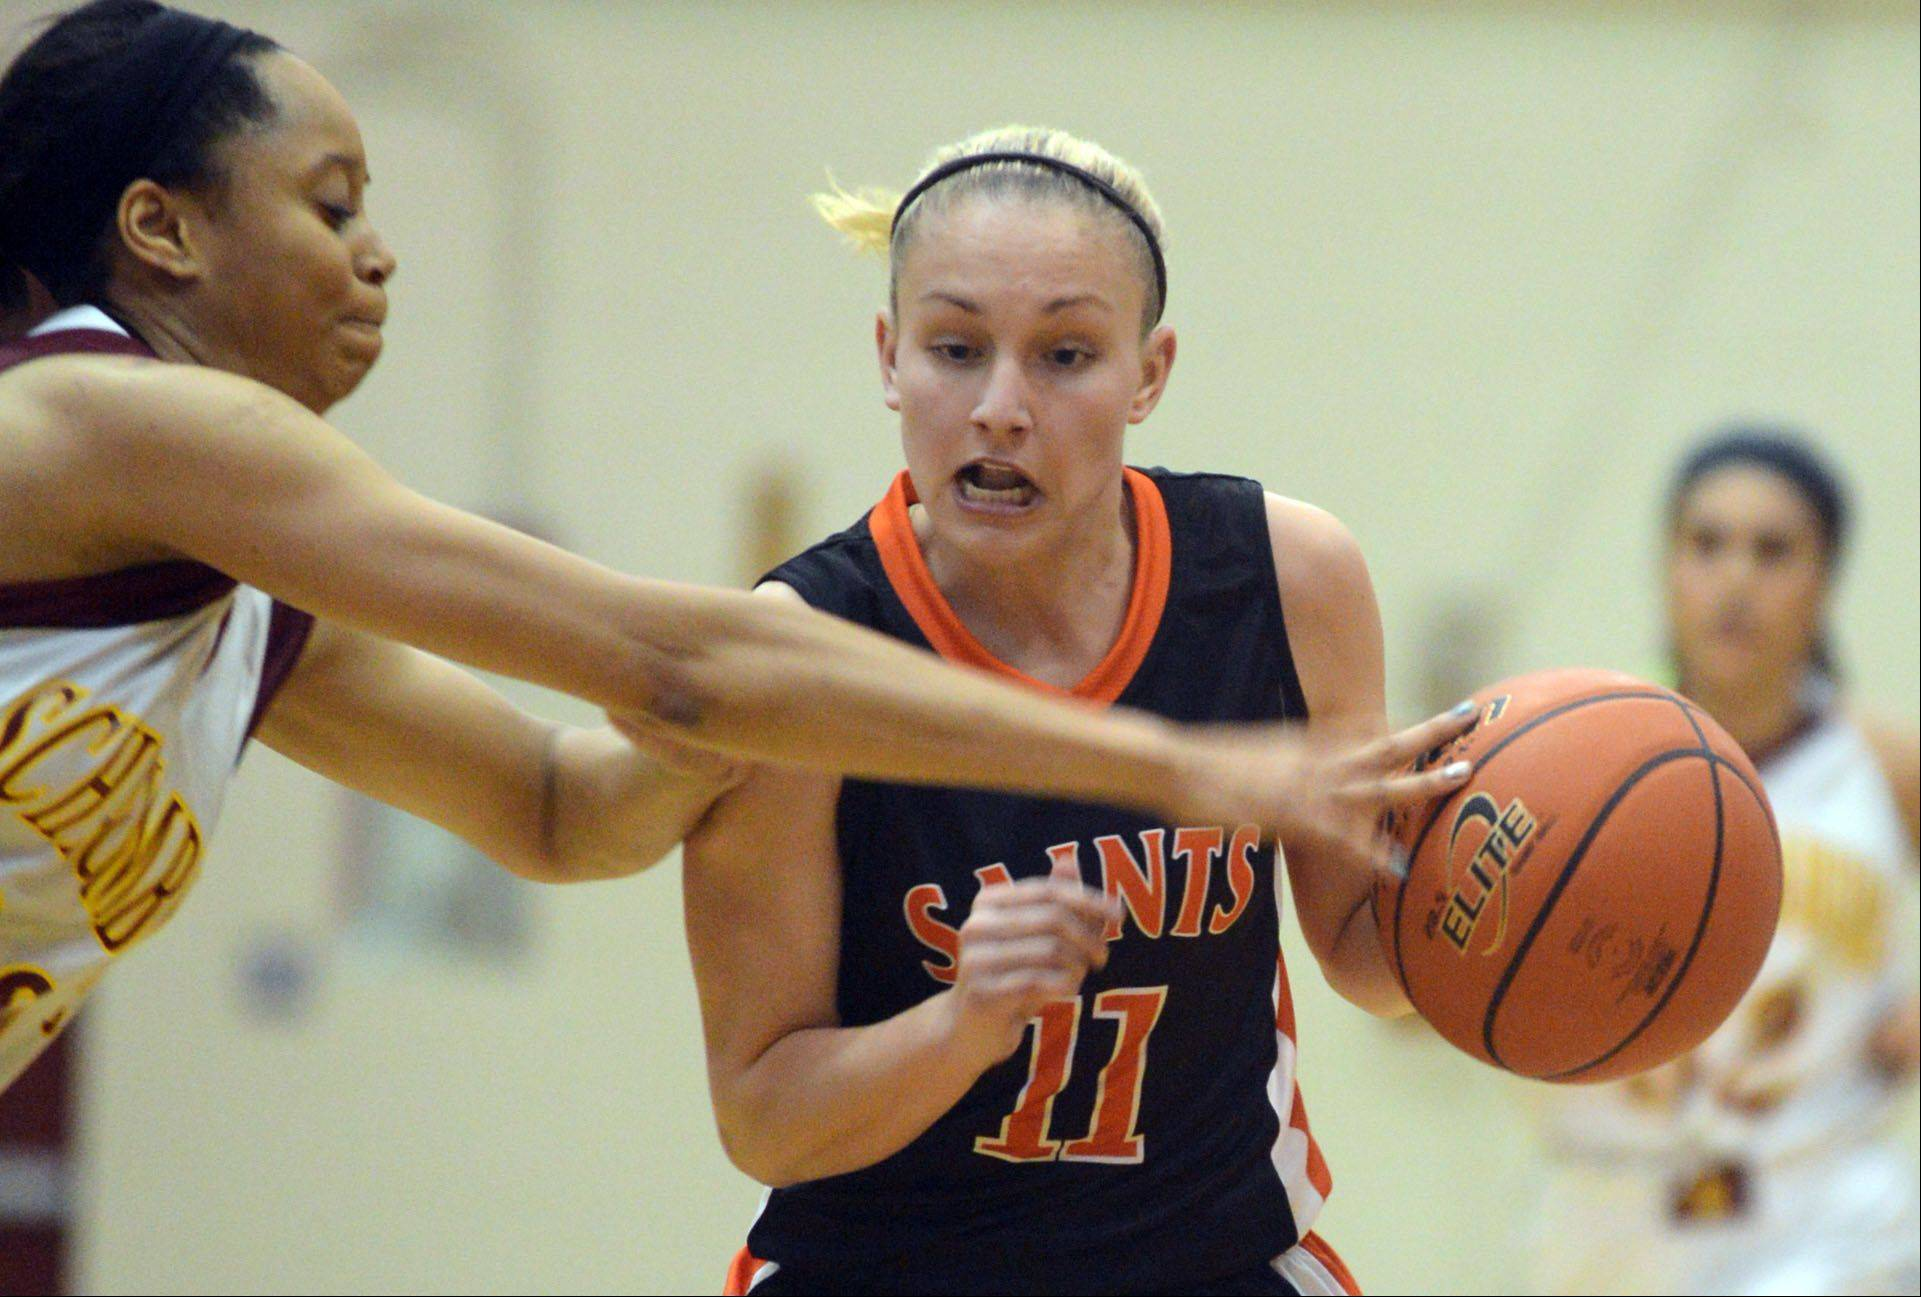 St. Charles East's Katelyn Claussner, right, tries to get past Schaumburg's Jada Blackwell, left, during a varsity girls basketball game at Schaumburg High School on Monday evening.